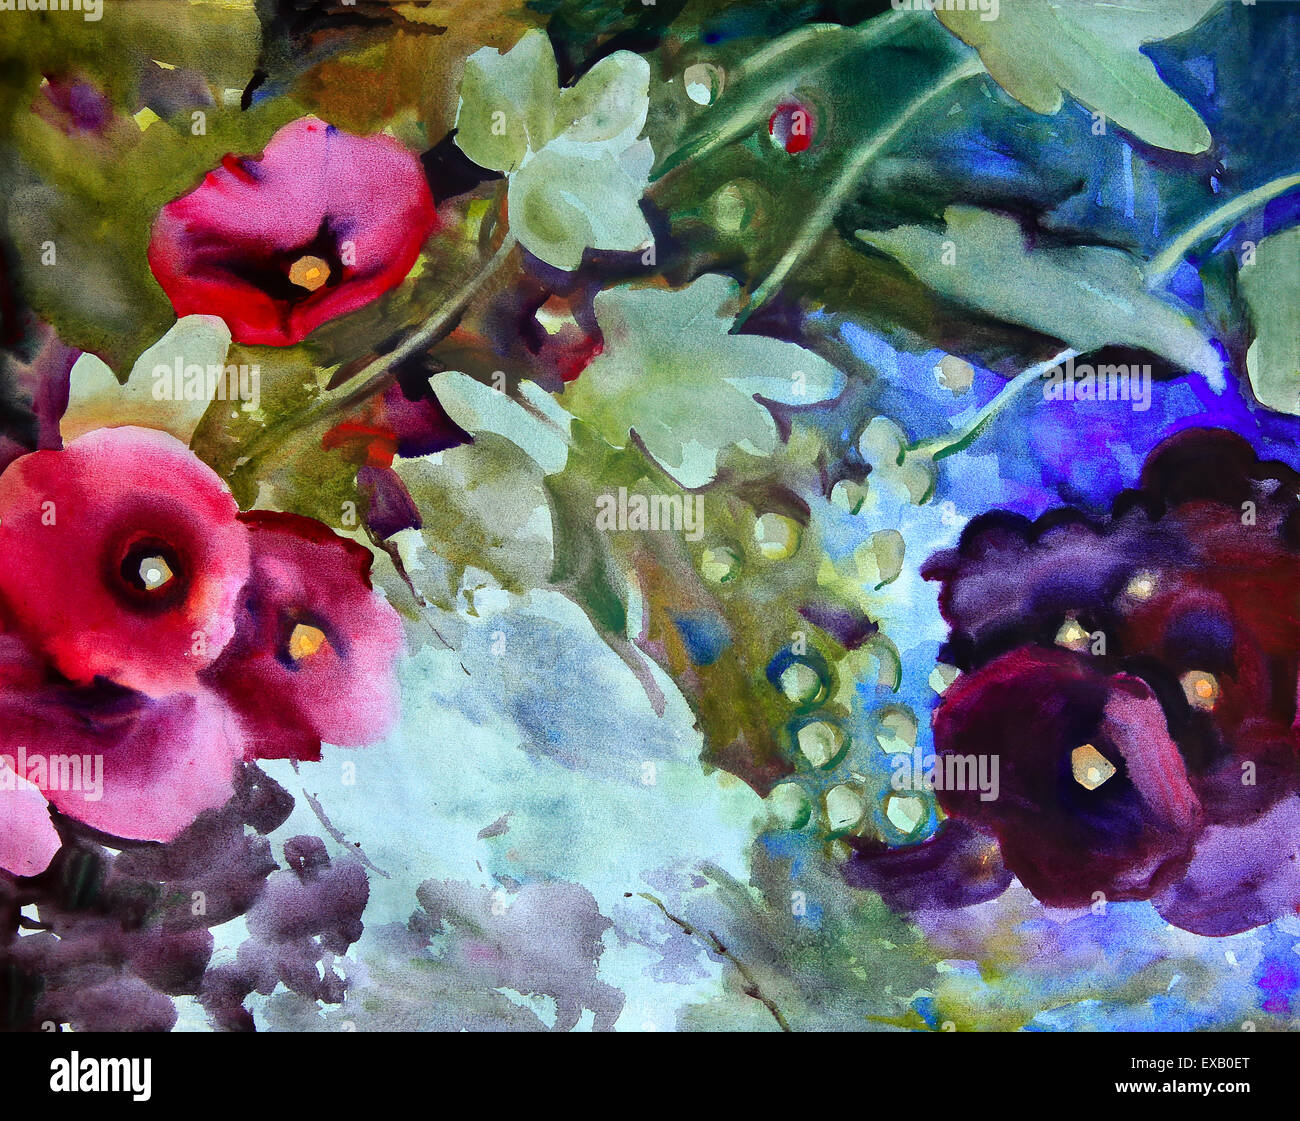 Watercolor painting of the beautiful flowers stock photo royalty watercolor painting of the beautiful flowers izmirmasajfo Image collections